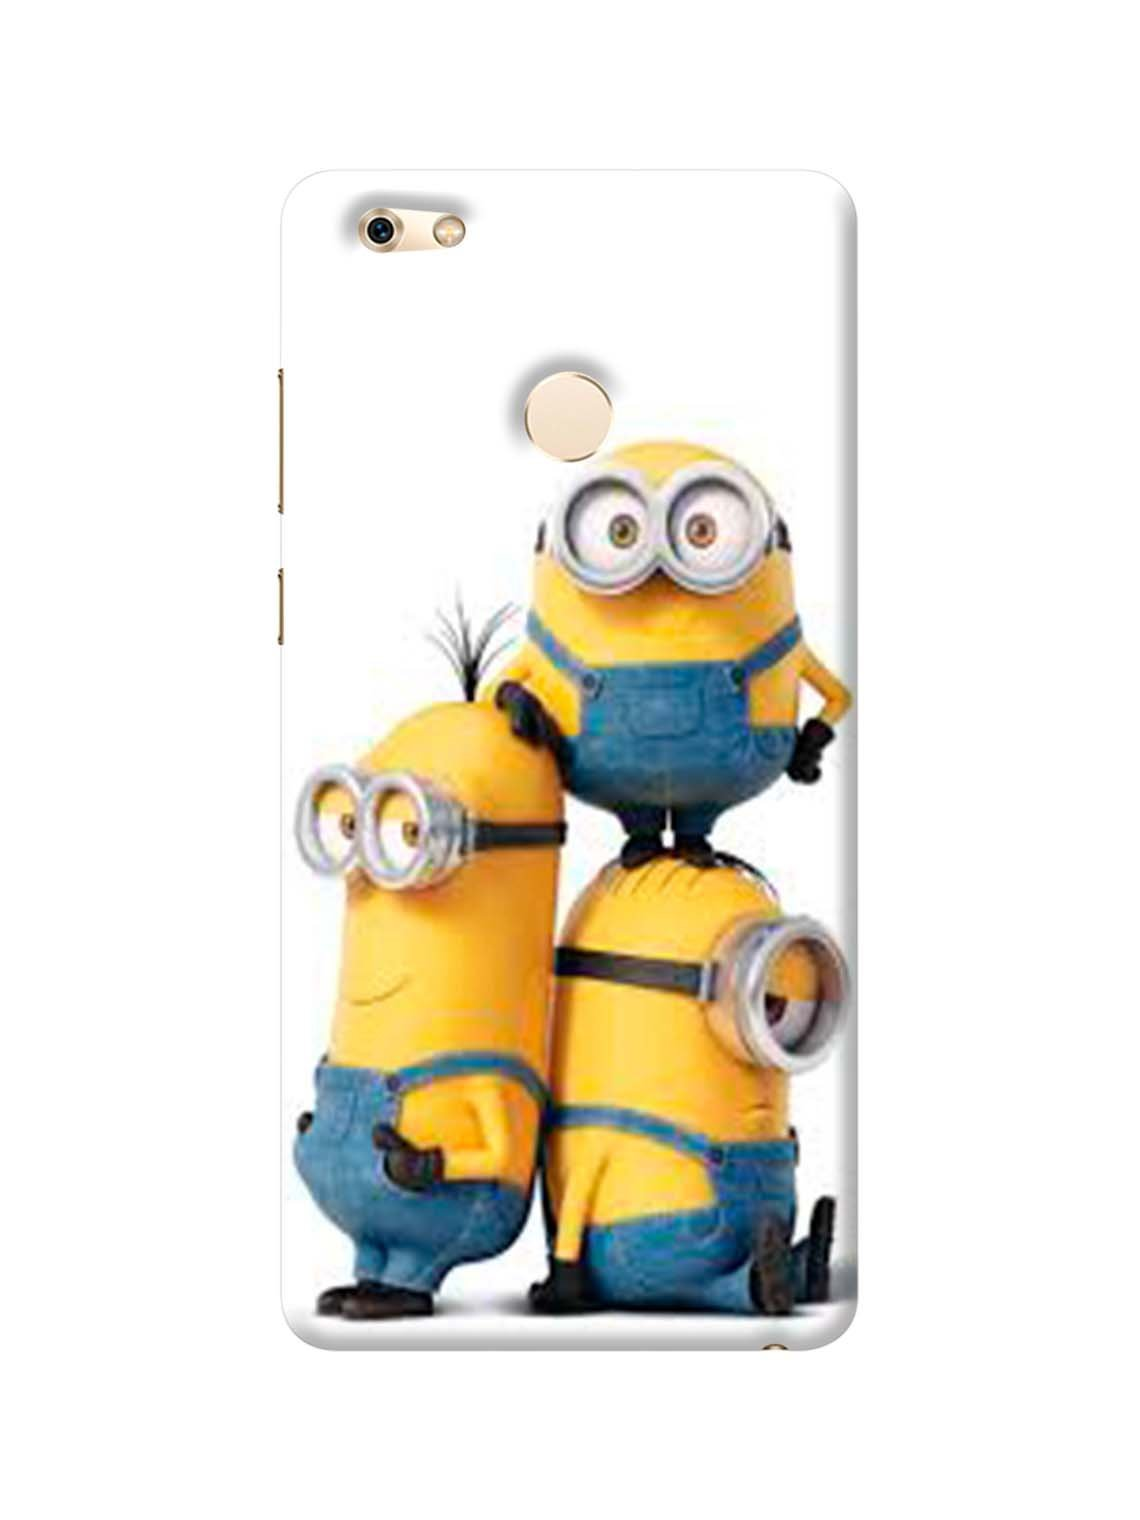 Minion Poster Printed Mobile Case For Gionee M7 Power